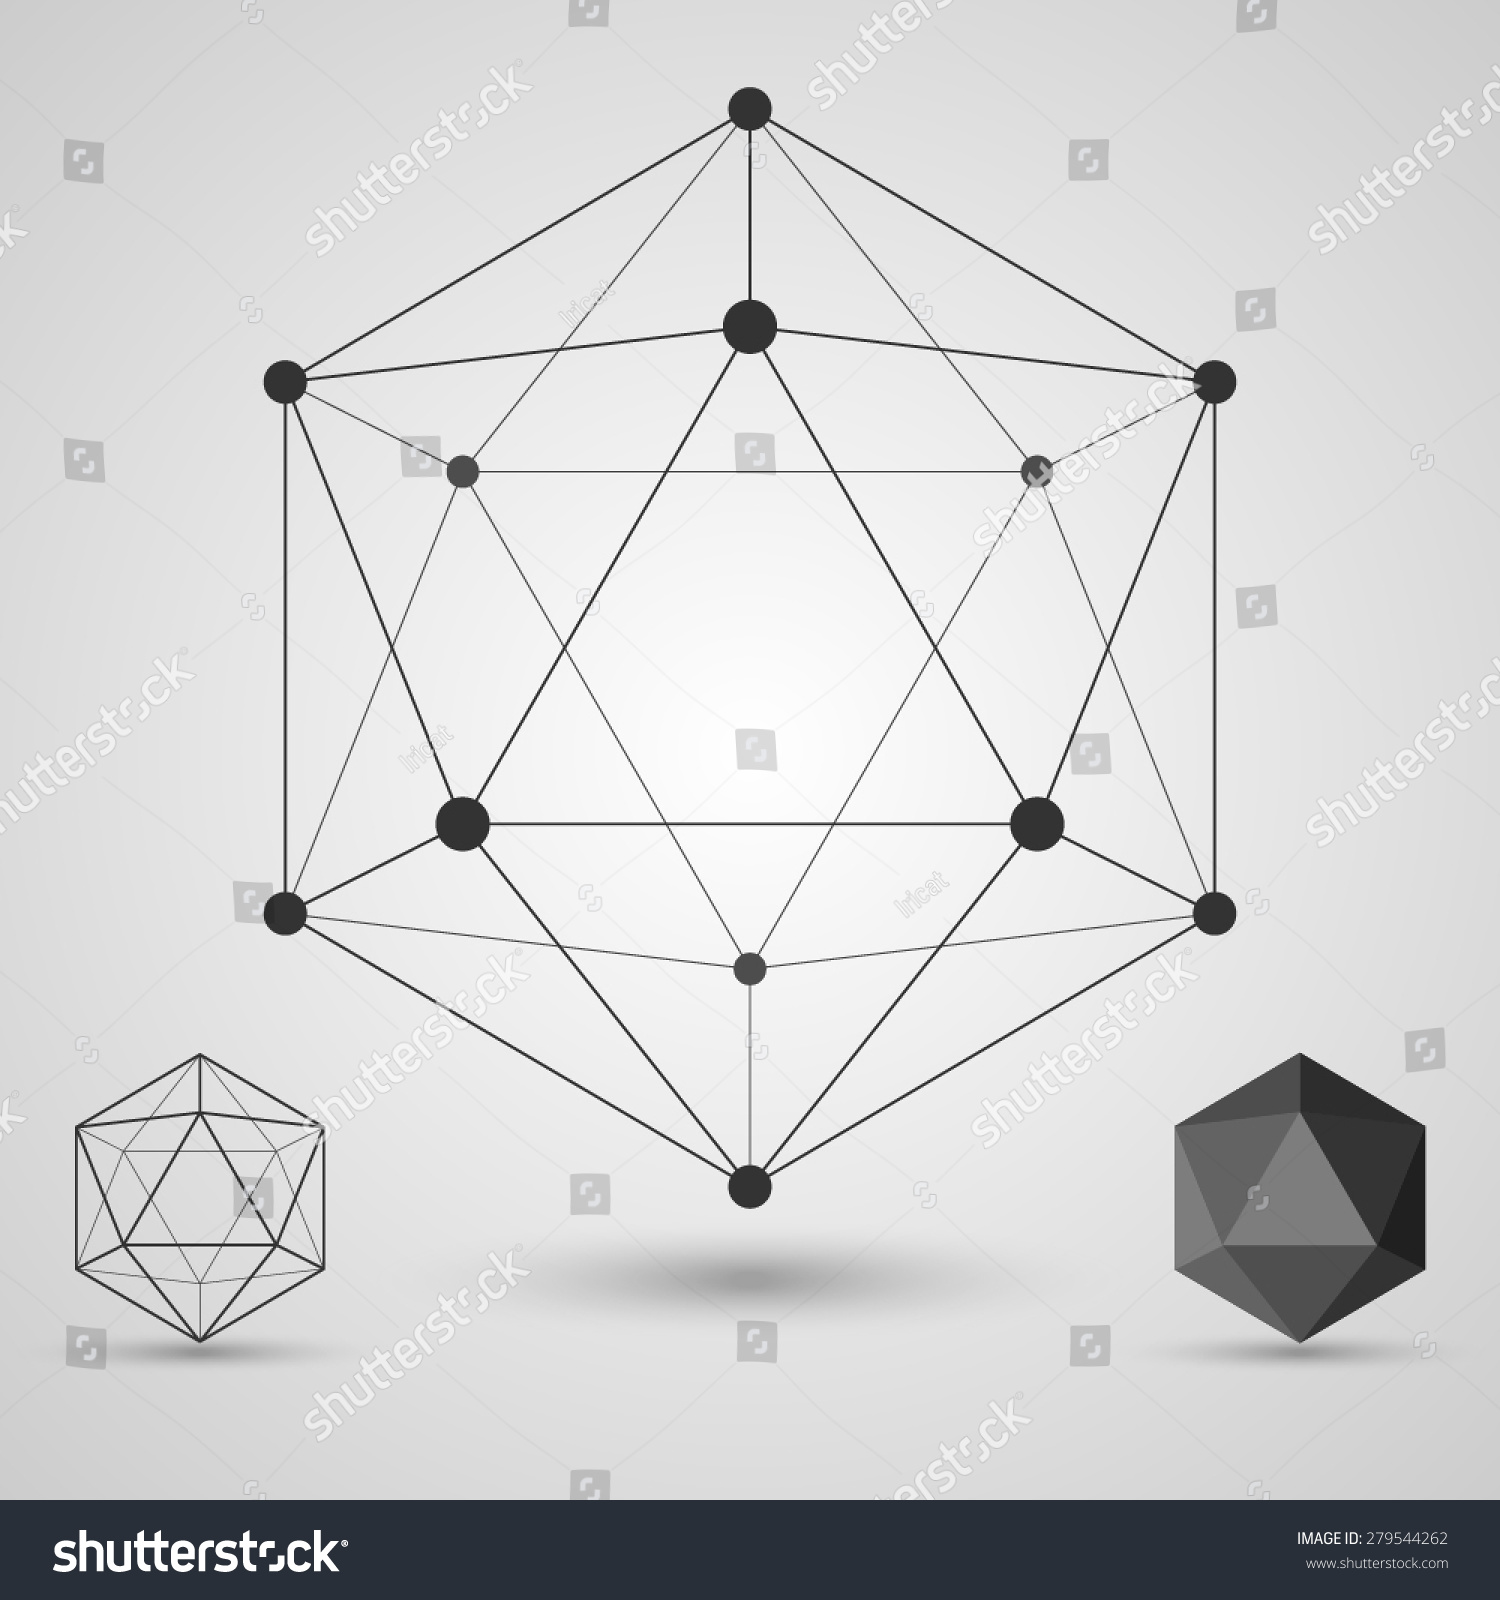 Frame Volumetric Geometric Shapes With Edges And Vertices Geometric Scientific Concept Vector